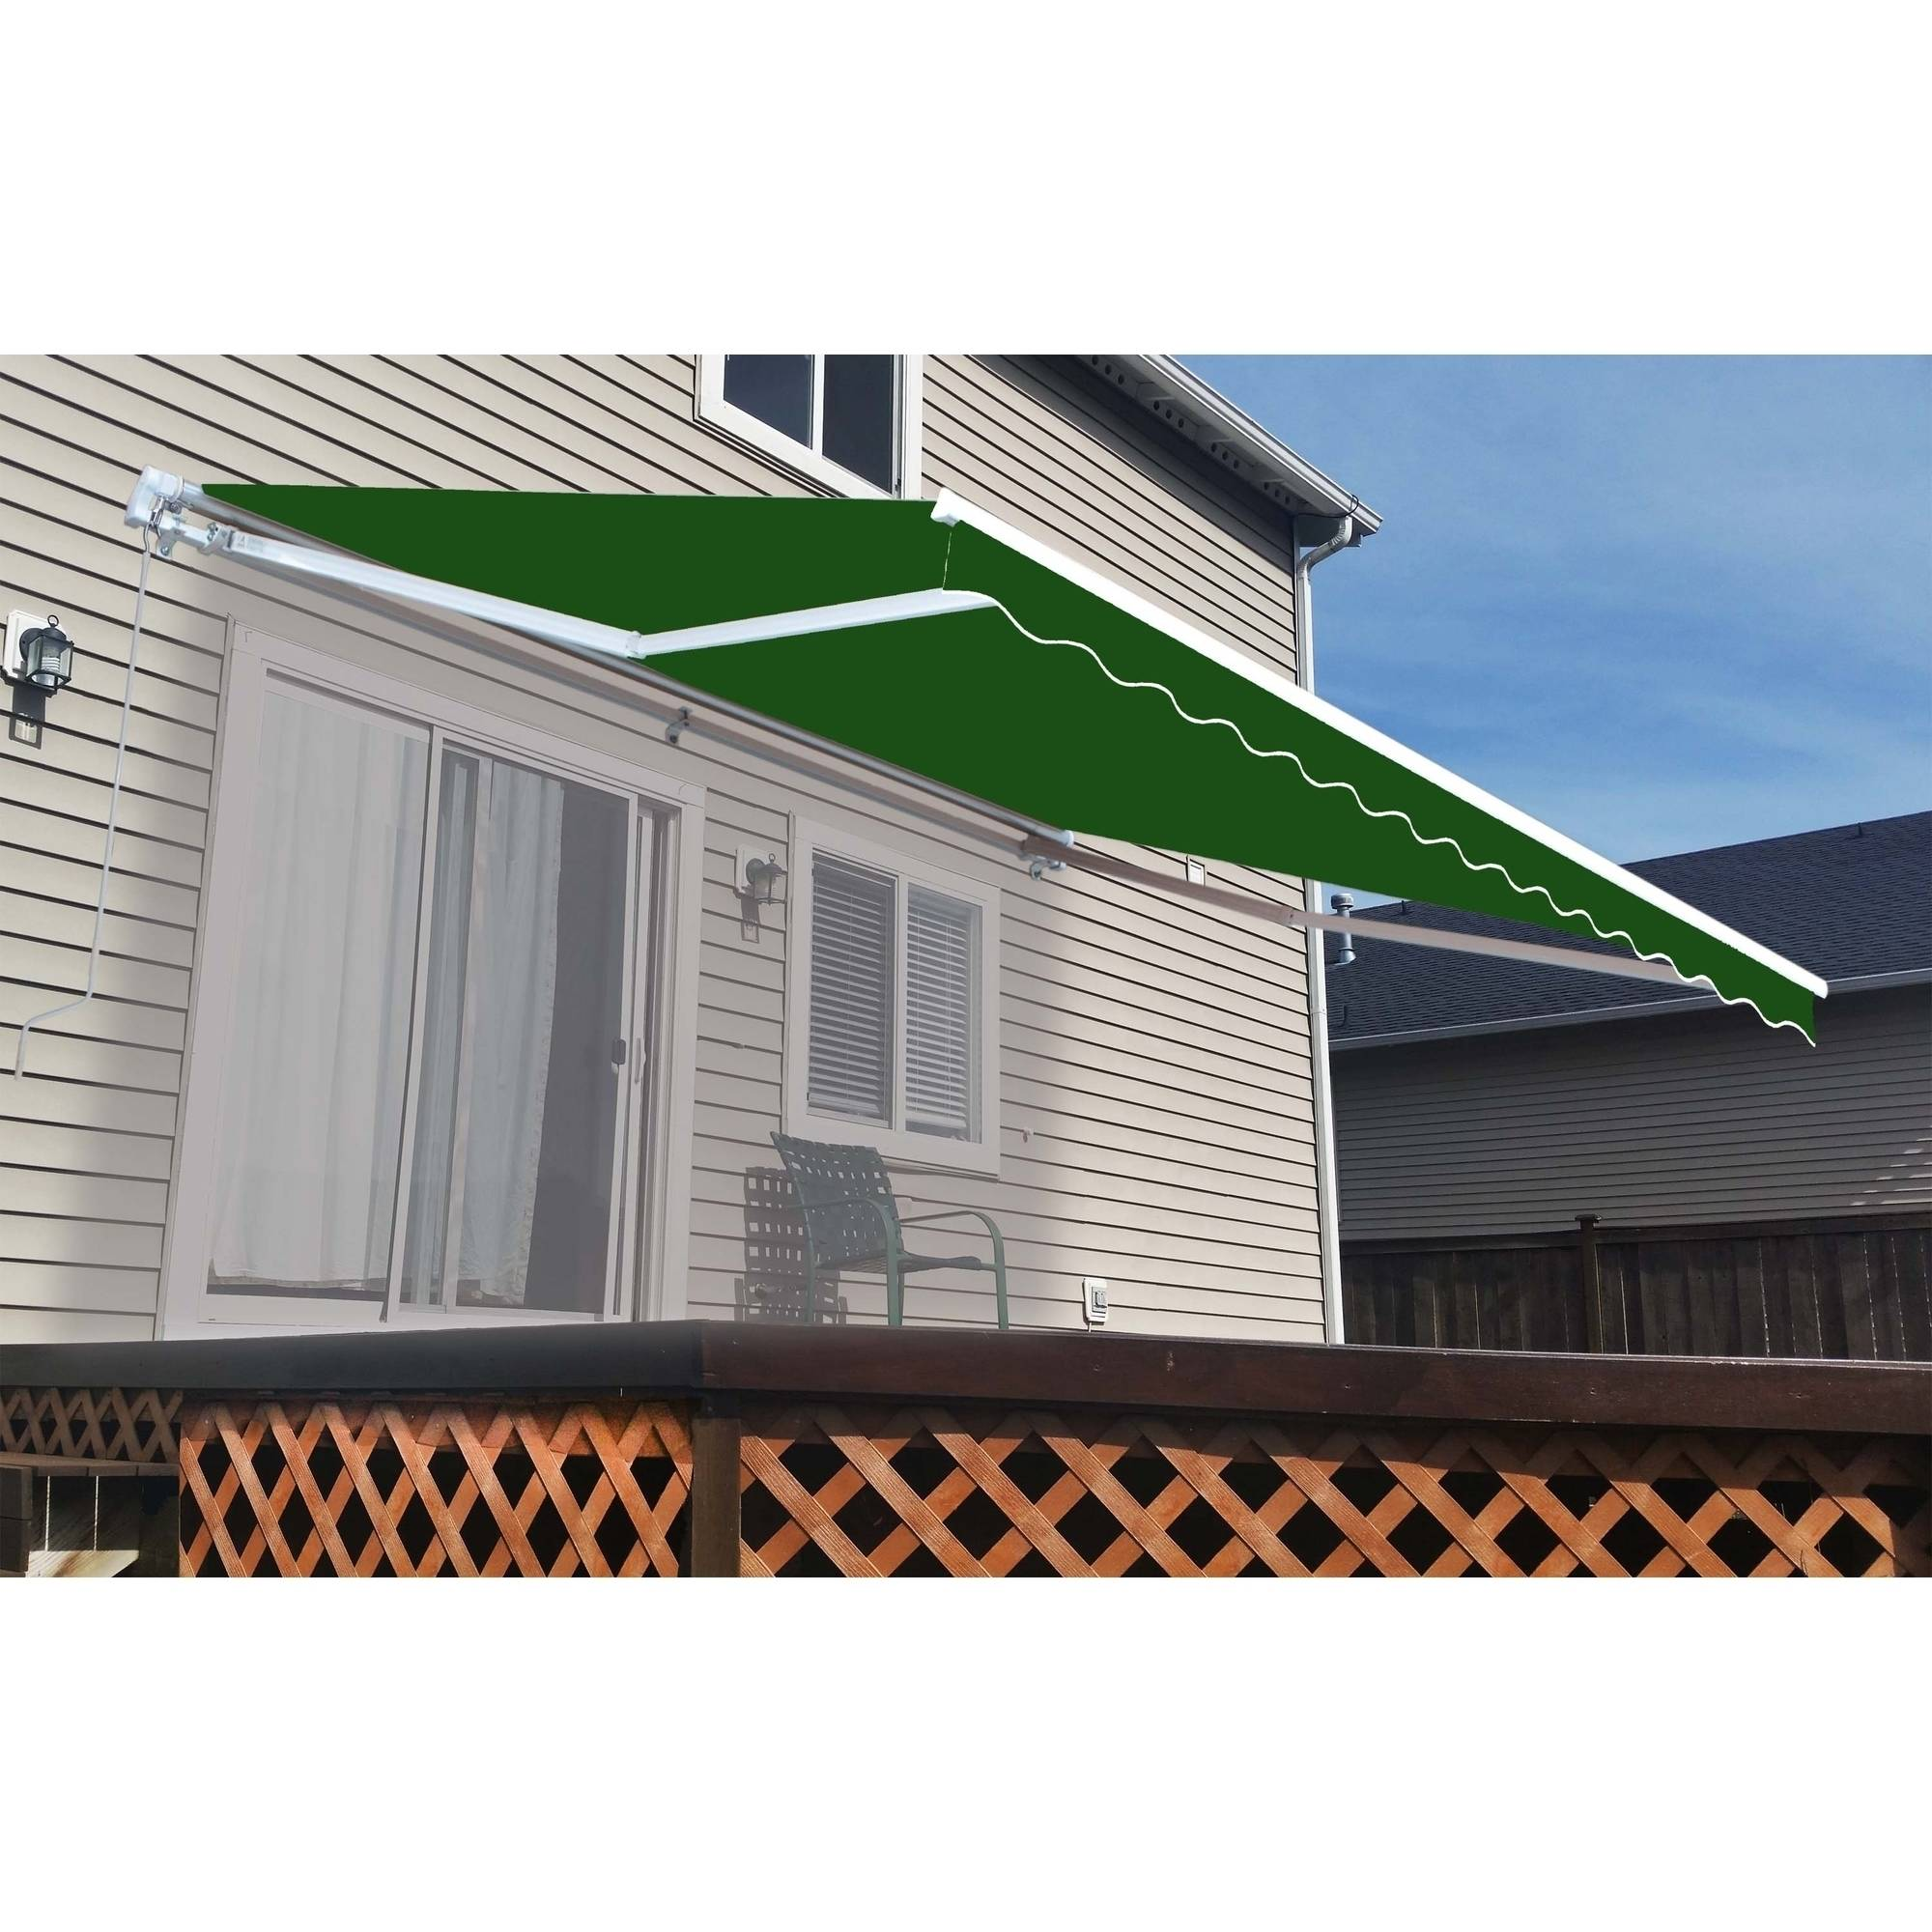 awning new for do homes appeal shade your much retractable shading titolo us cost awnings how home local is graphics and from one sunsetter garden